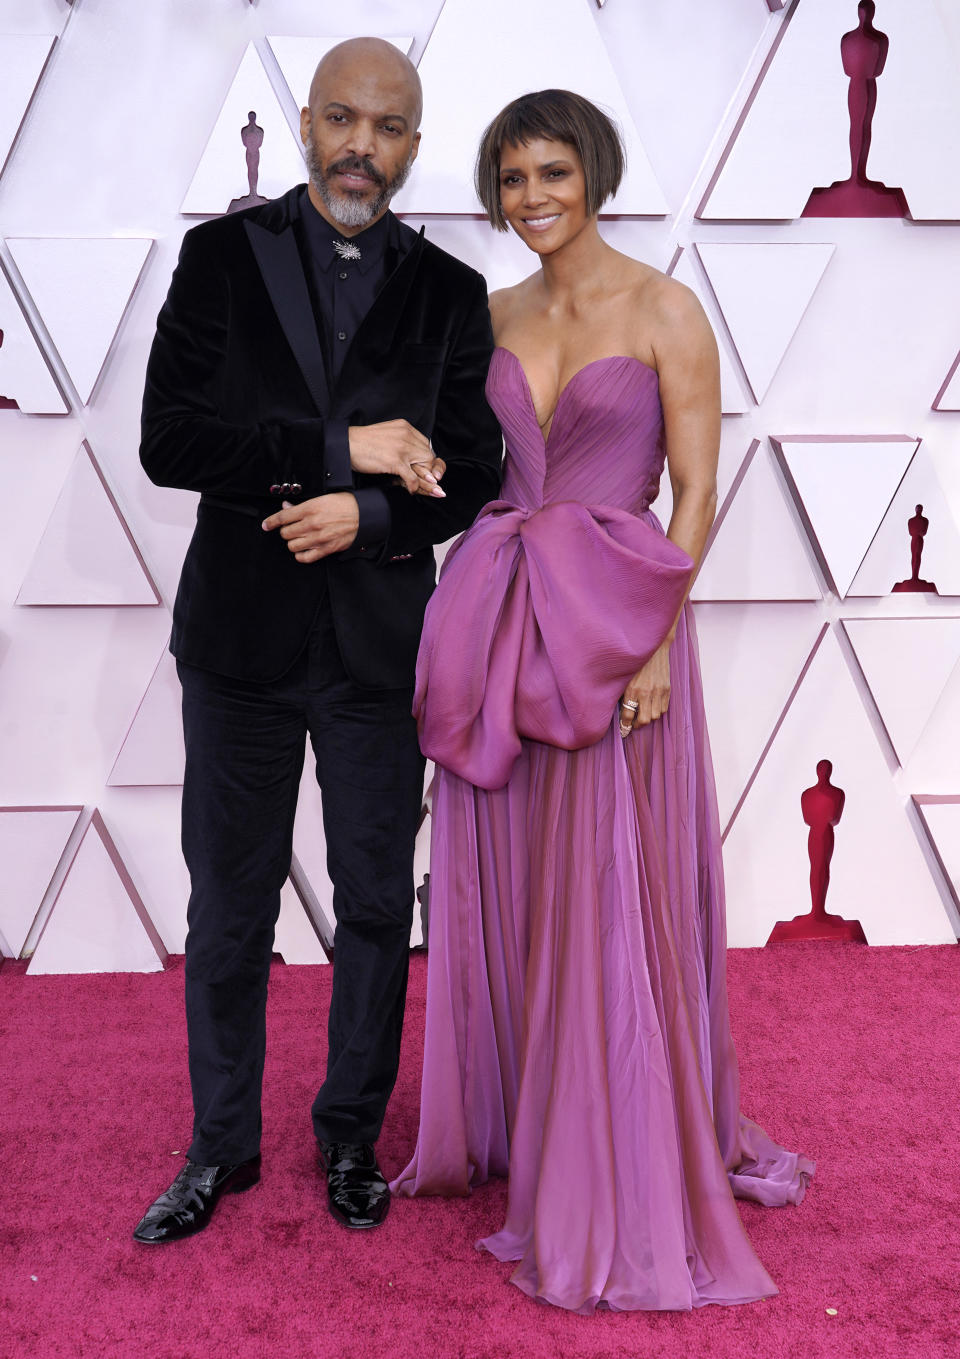 Van Hunt and Halle Berry on the red carpet at the 93rd Annual Academy Awards at Union Station on April 25, 2021 in Los Angeles, California